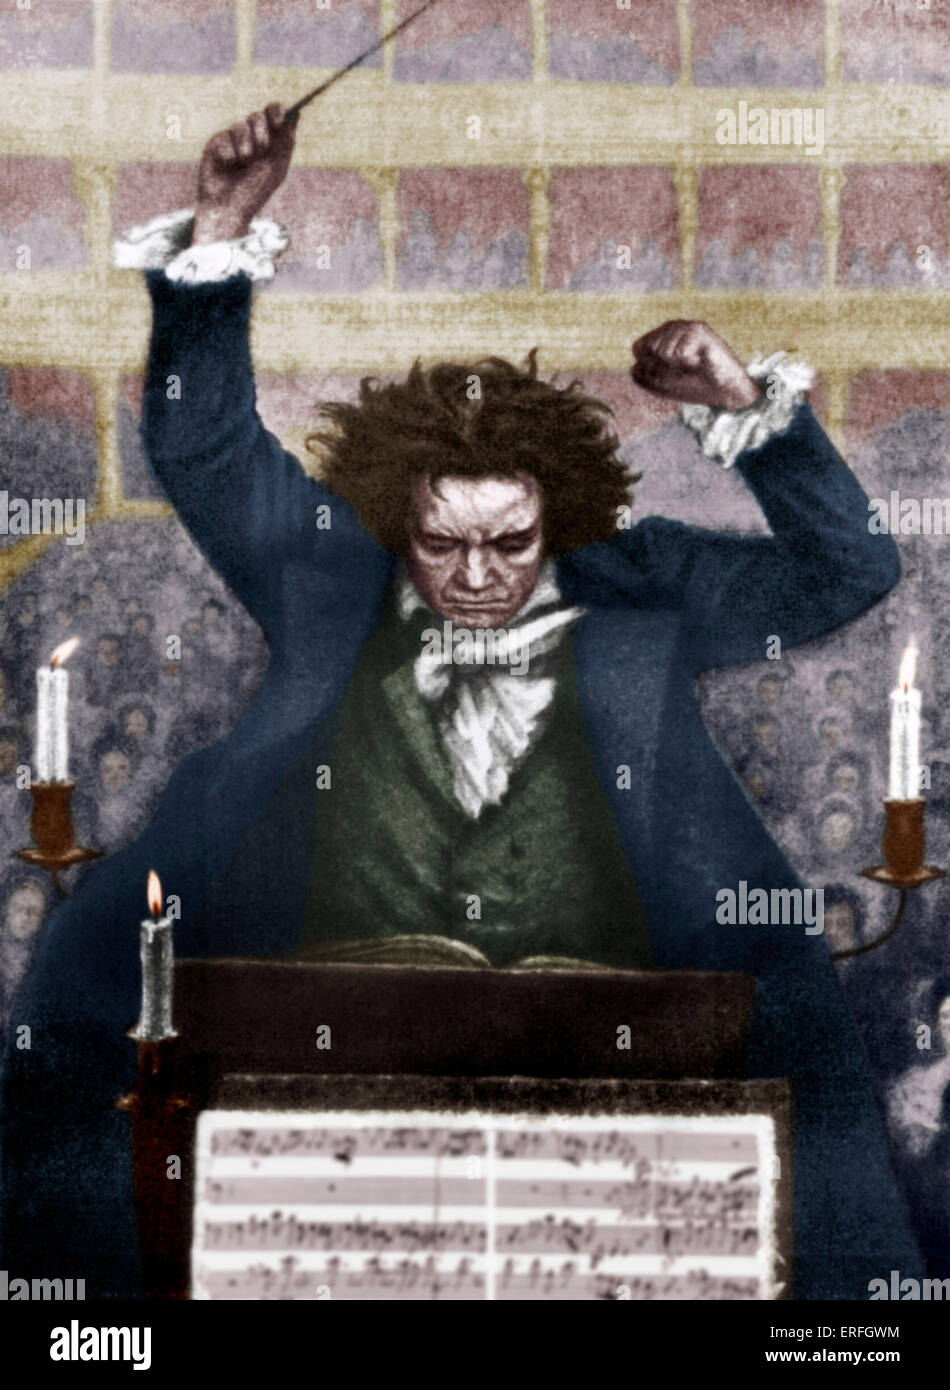 Ludwig van Beethoven conducting with baton - by Katzaroff. German composer, 17 December  1770- 26 March 1827.Stock Photo